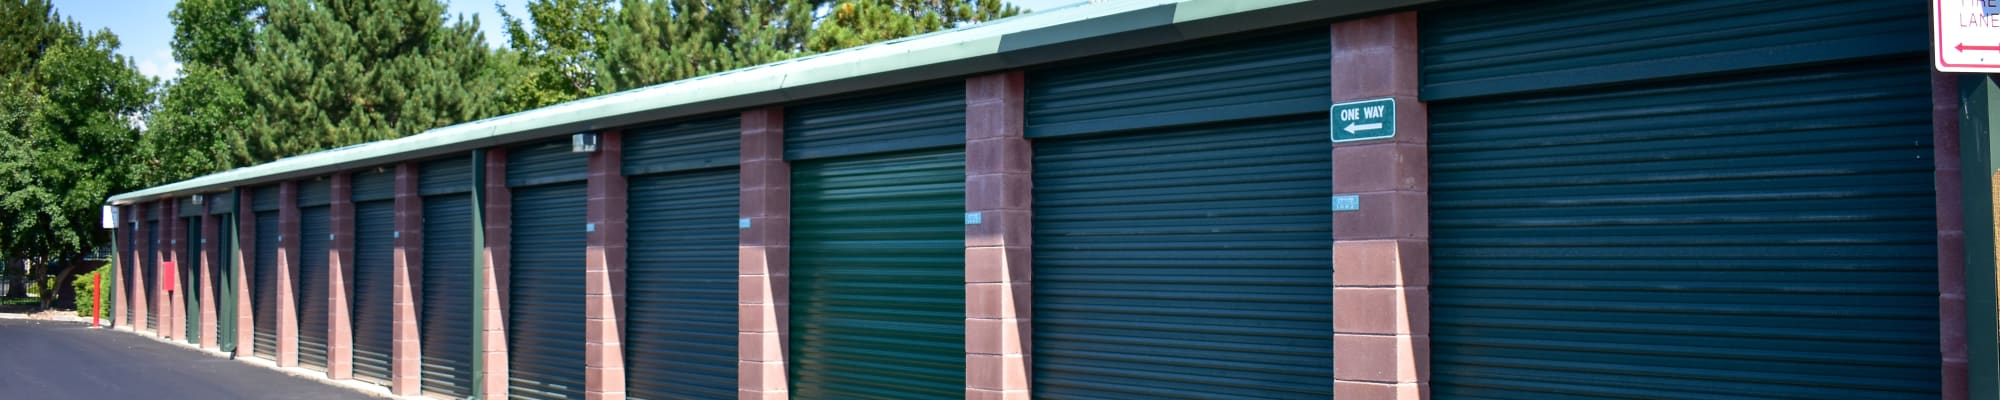 Features at STOR-N-LOCK Self Storage in Thornton, Colorado